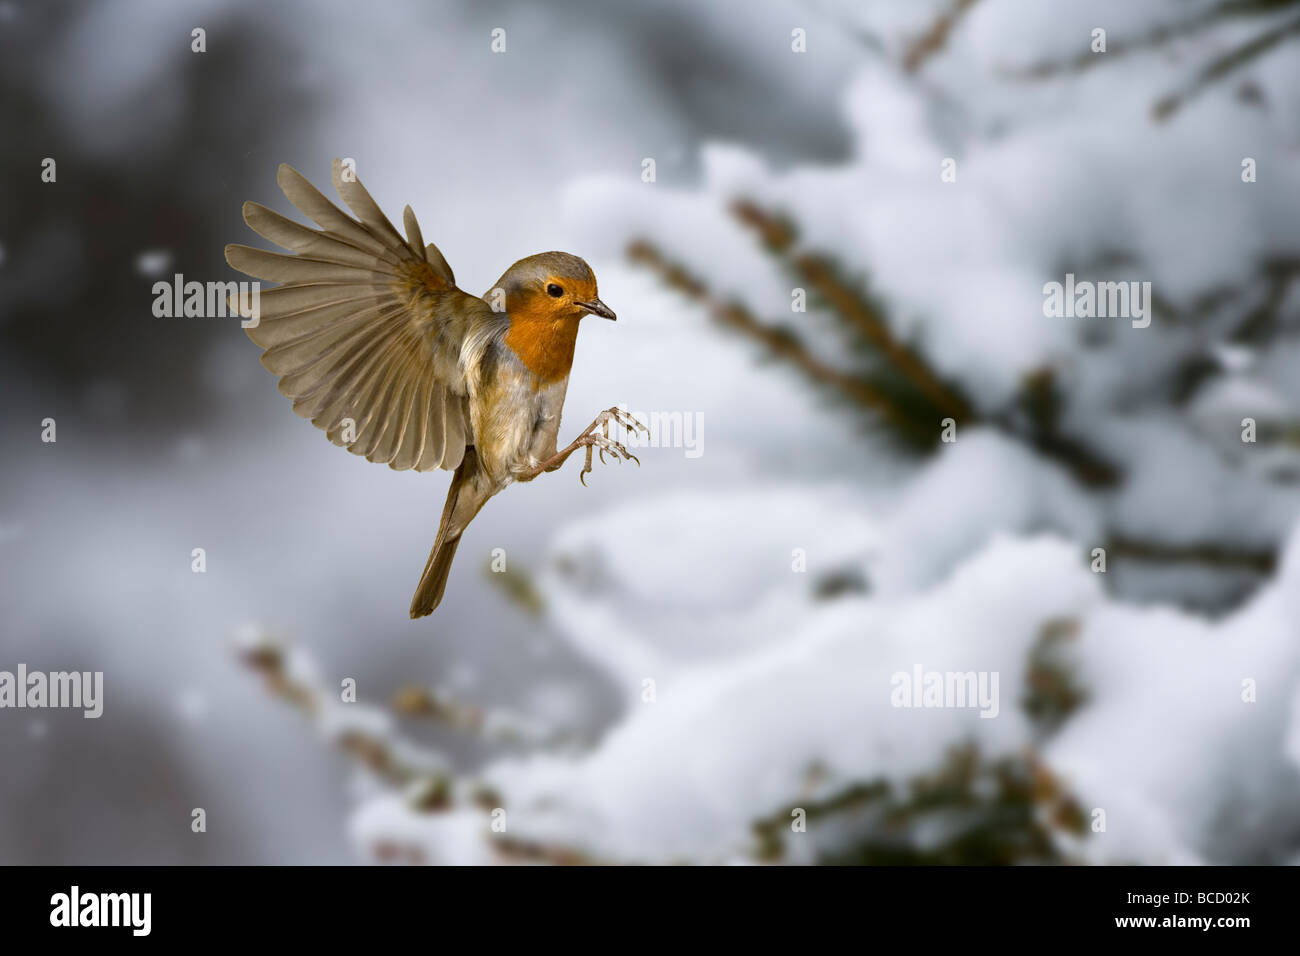 Robin (Erithacus rubecula) in snow. UK - Stock Image